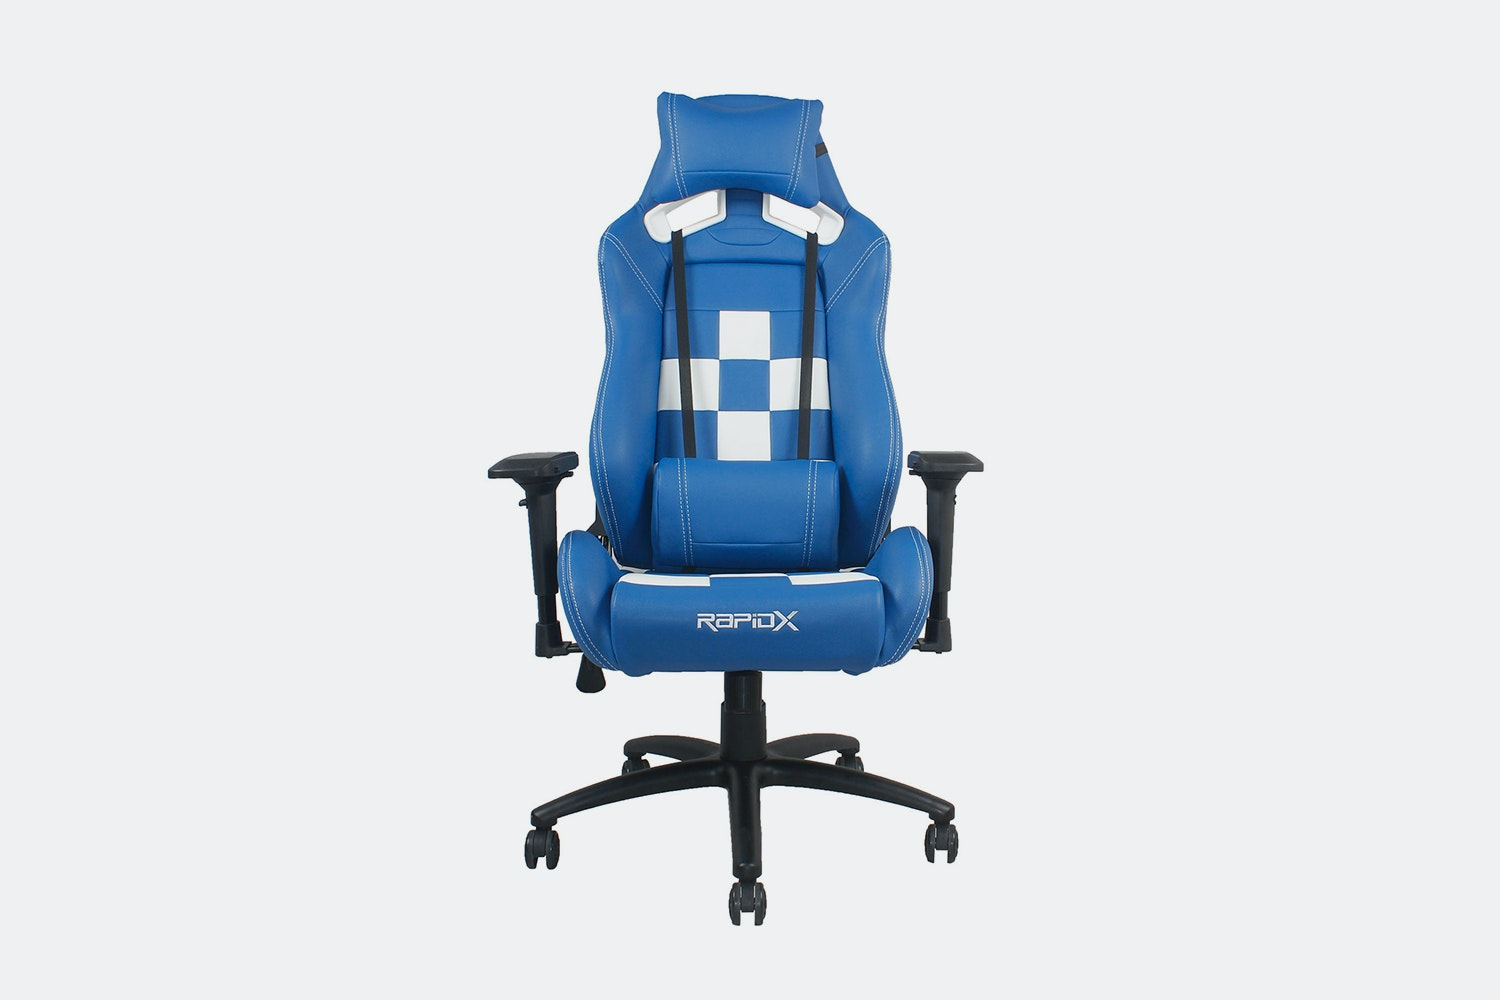 Finish Line Chair - Blue/White (-$30)